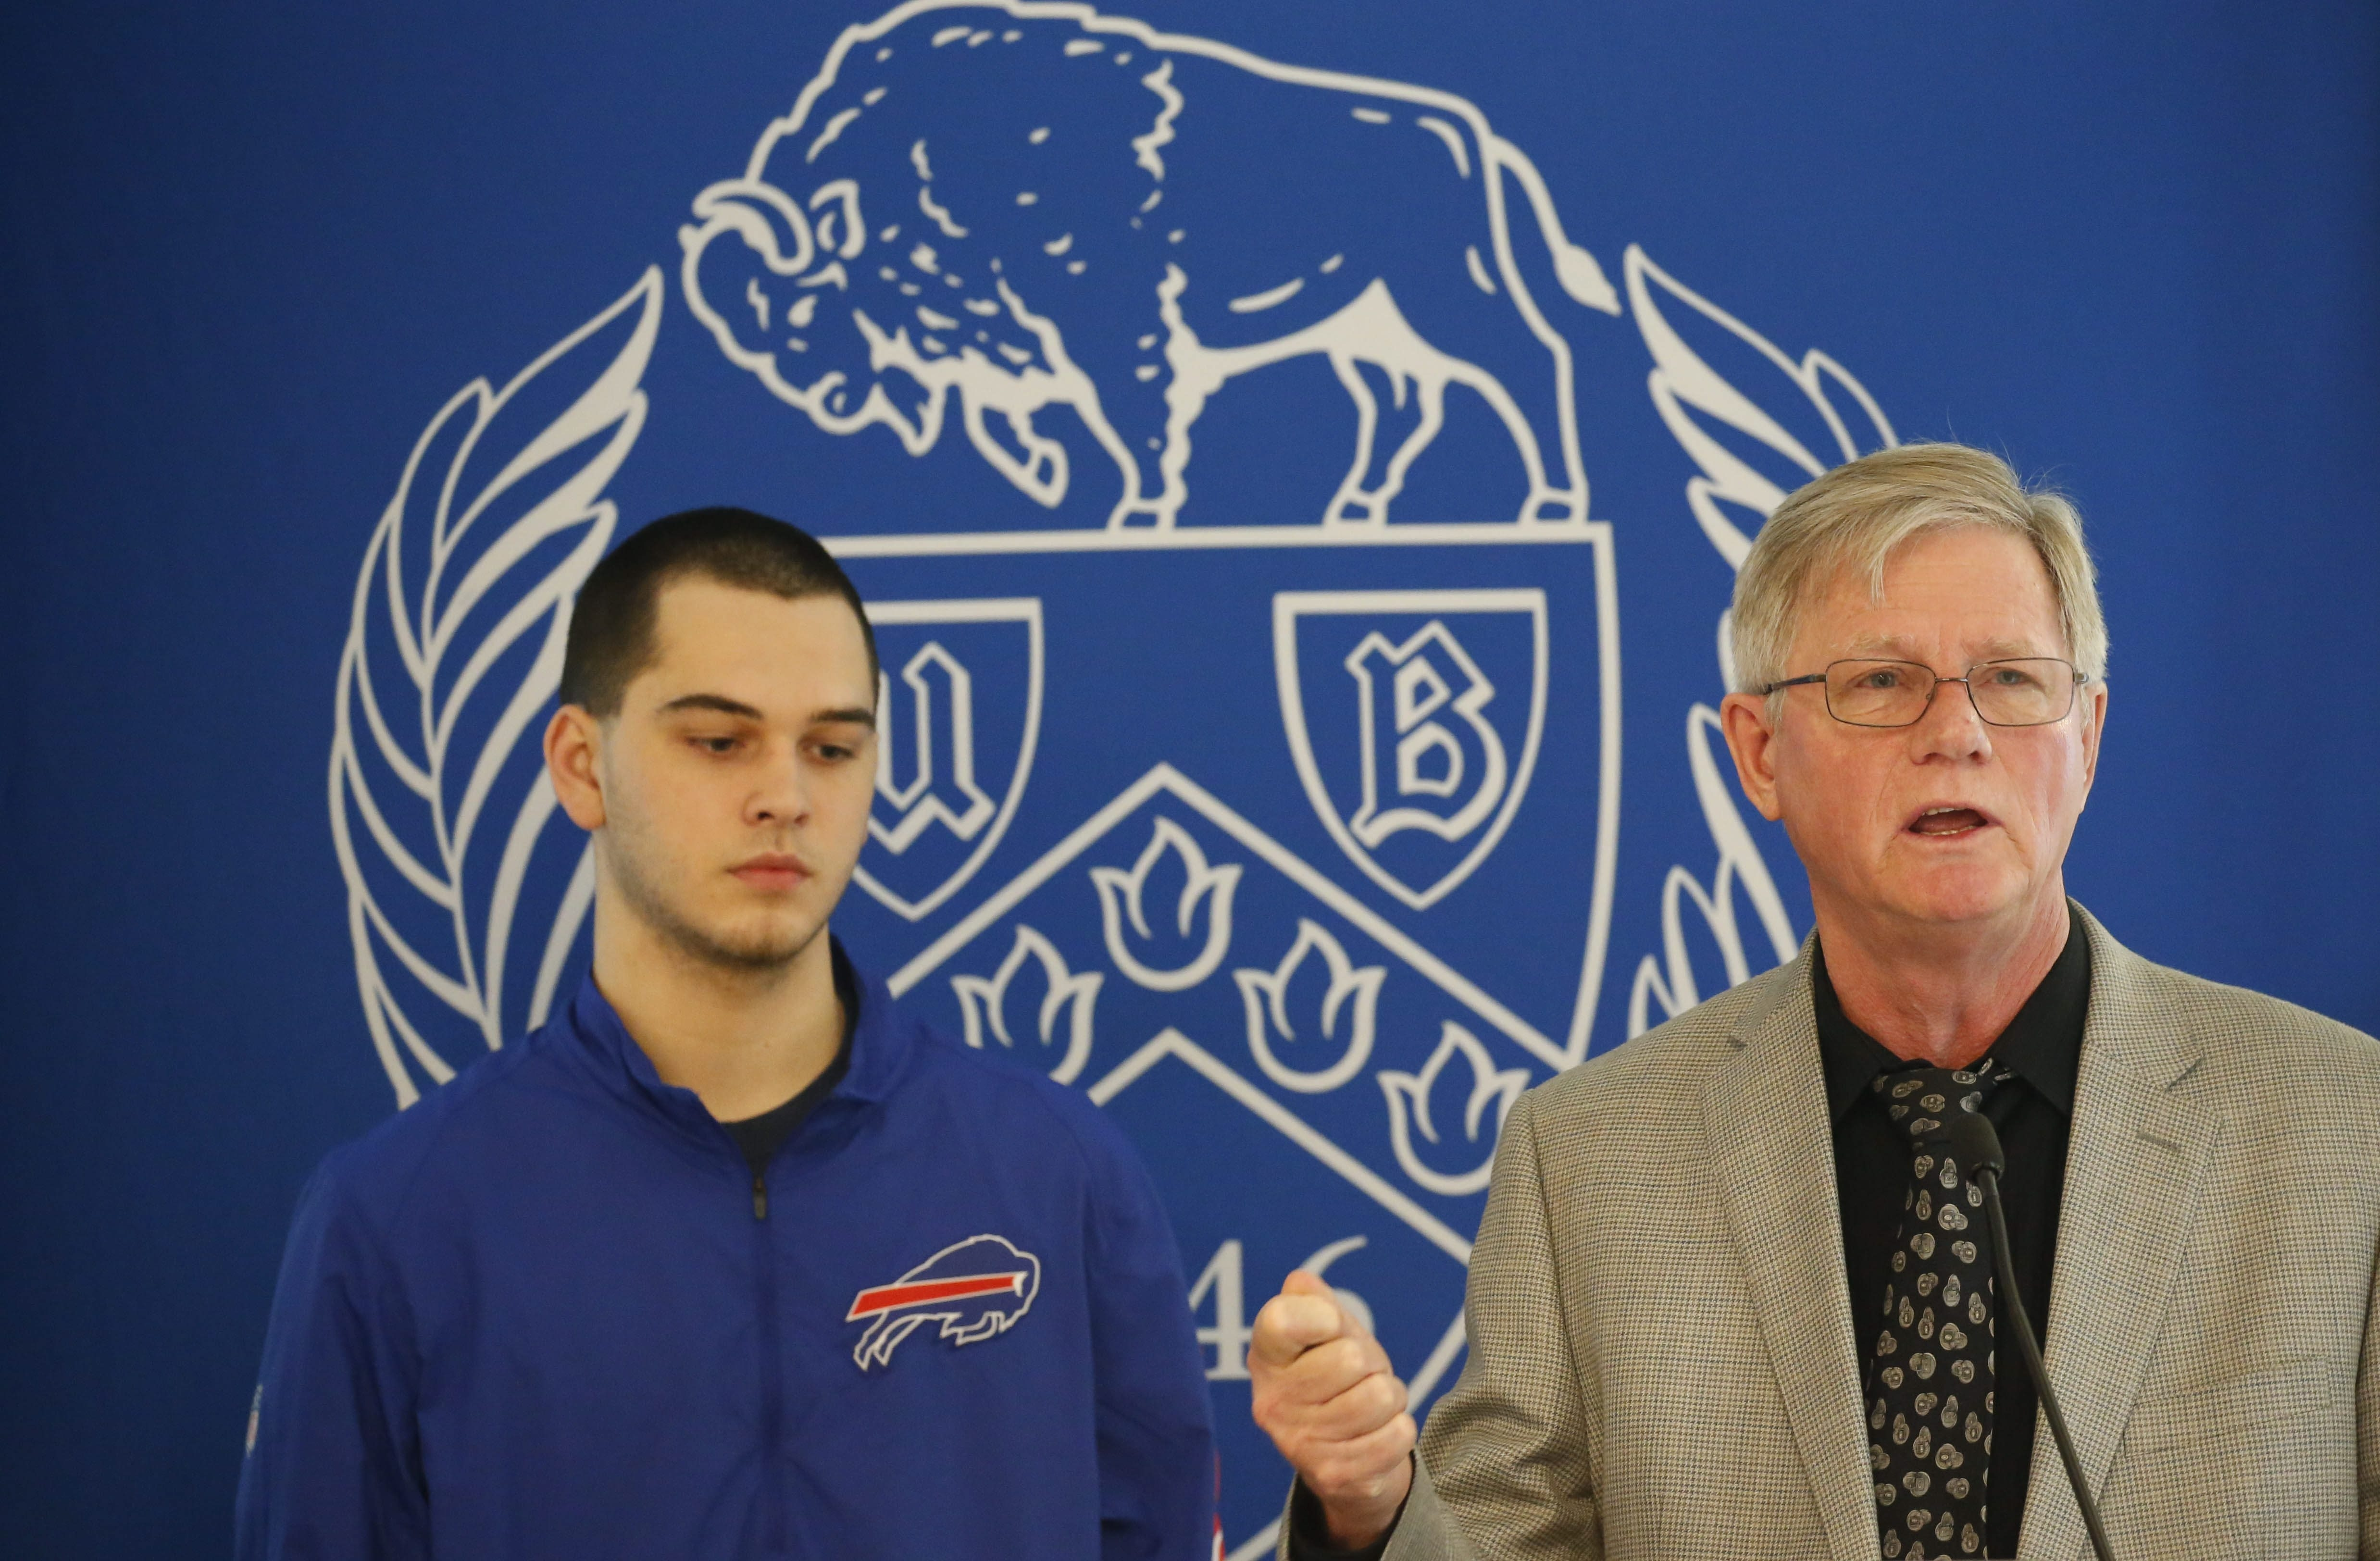 Sean Kaiser, a senior at Frontier High School, left, and Dr. Barry S. Willer, research director of the UB Concussion Management Clinic, during an announcement that UB has been awarded a five year, $2 million grant from the National Institutes of Health to study concussions, Tuesday, March 15, 2016.  (Derek Gee/Buffalo News)